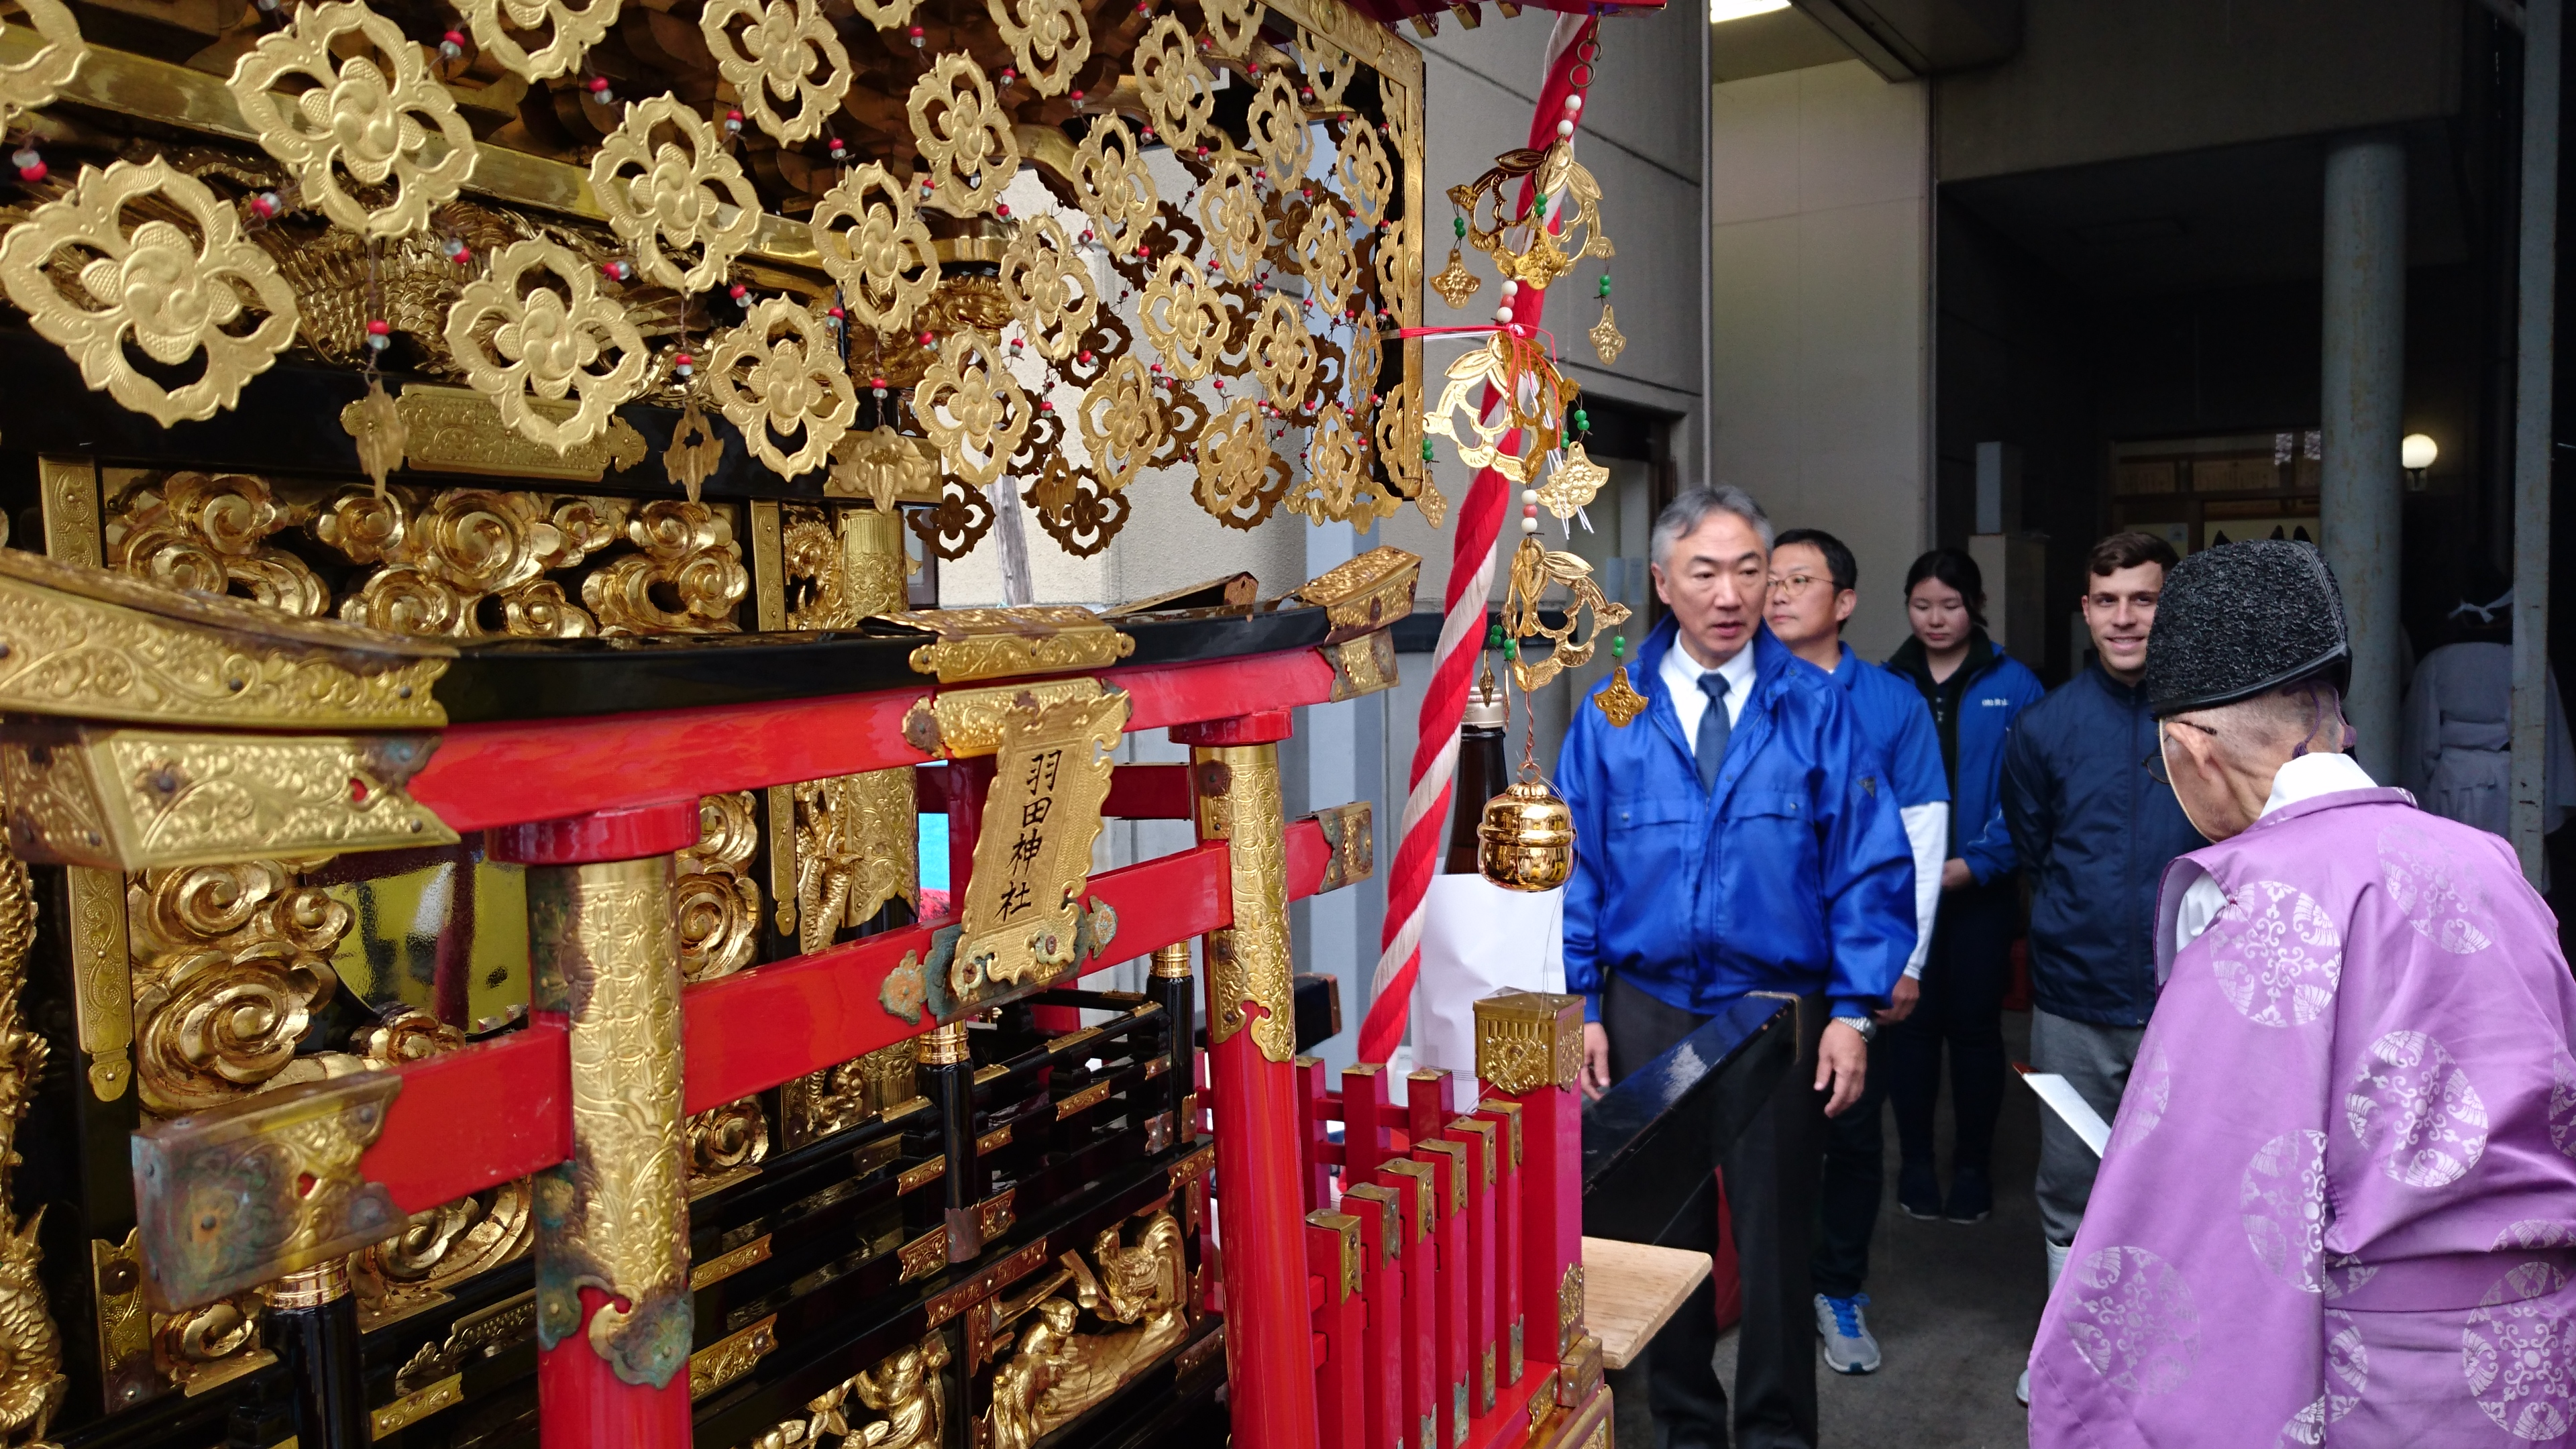 Picture of the head priest standing in front of the shrine, with other people standing by a sake brewery